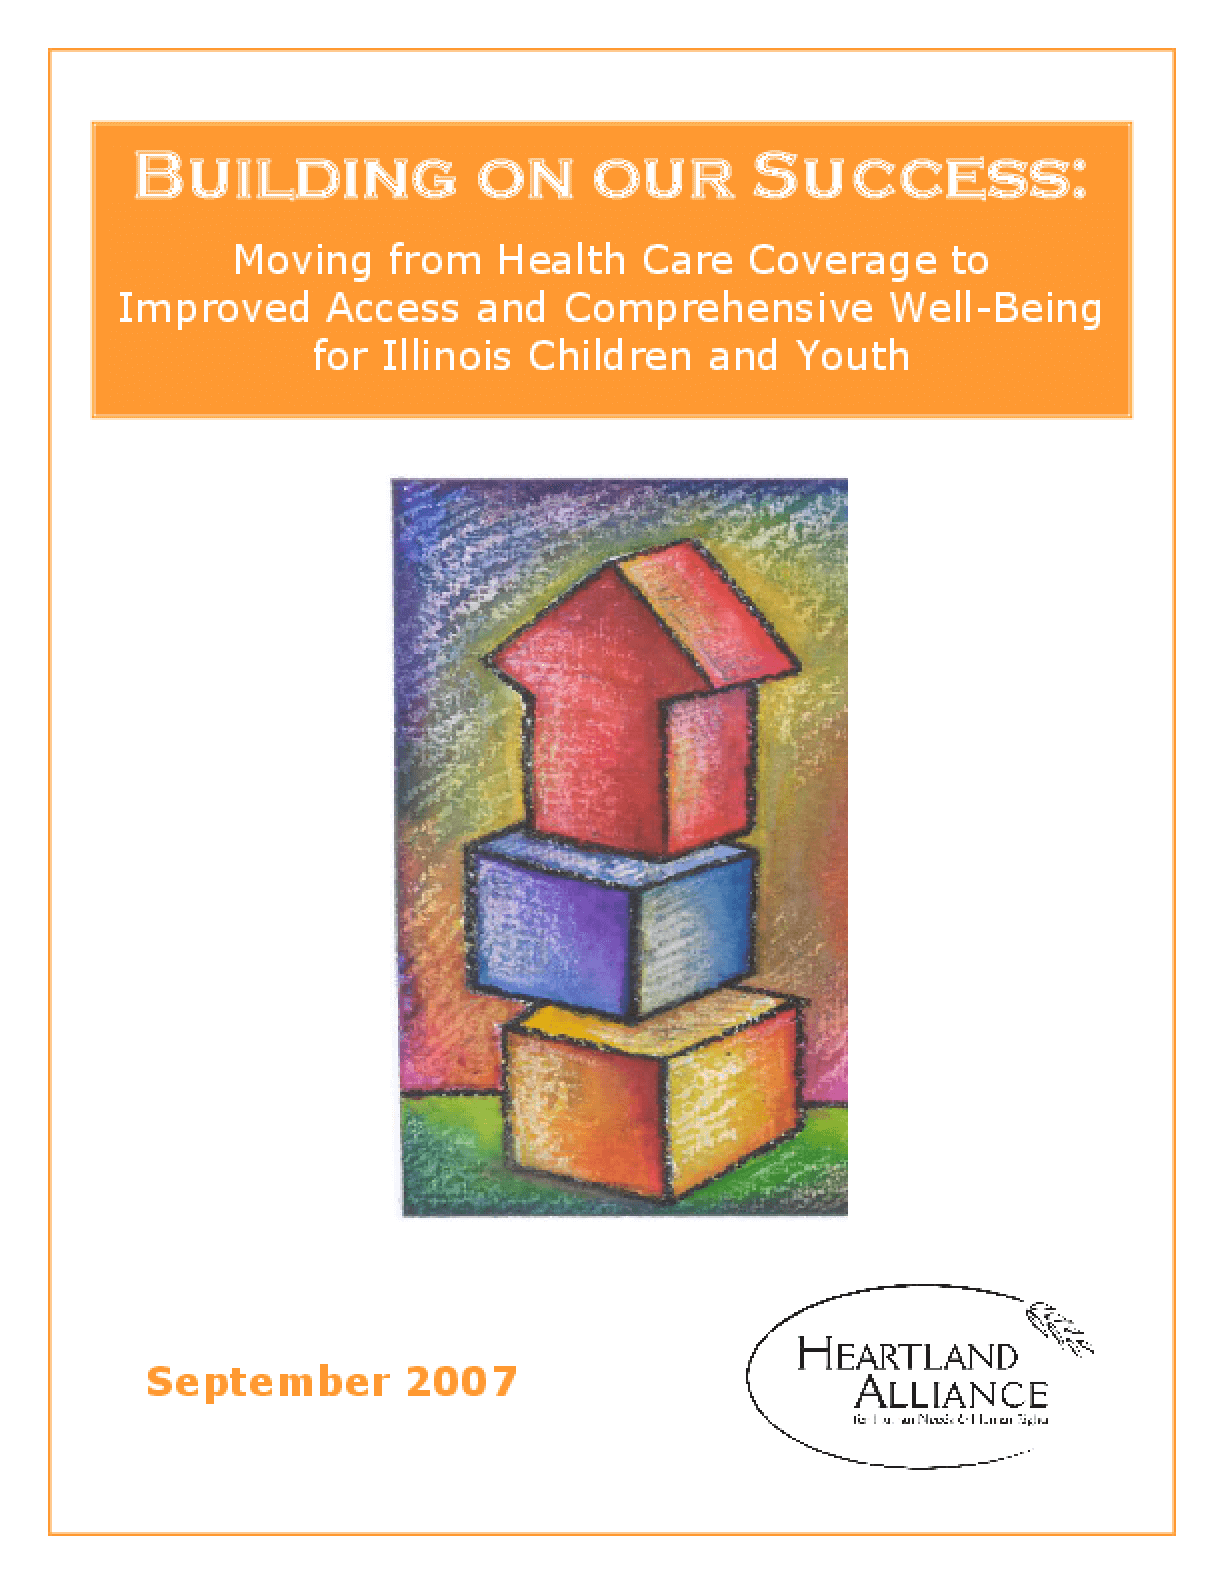 Building on our Success: Moving from Health Care Coverage to Improved Access and Comprehensive Well-Being for Illinois Children and Youth